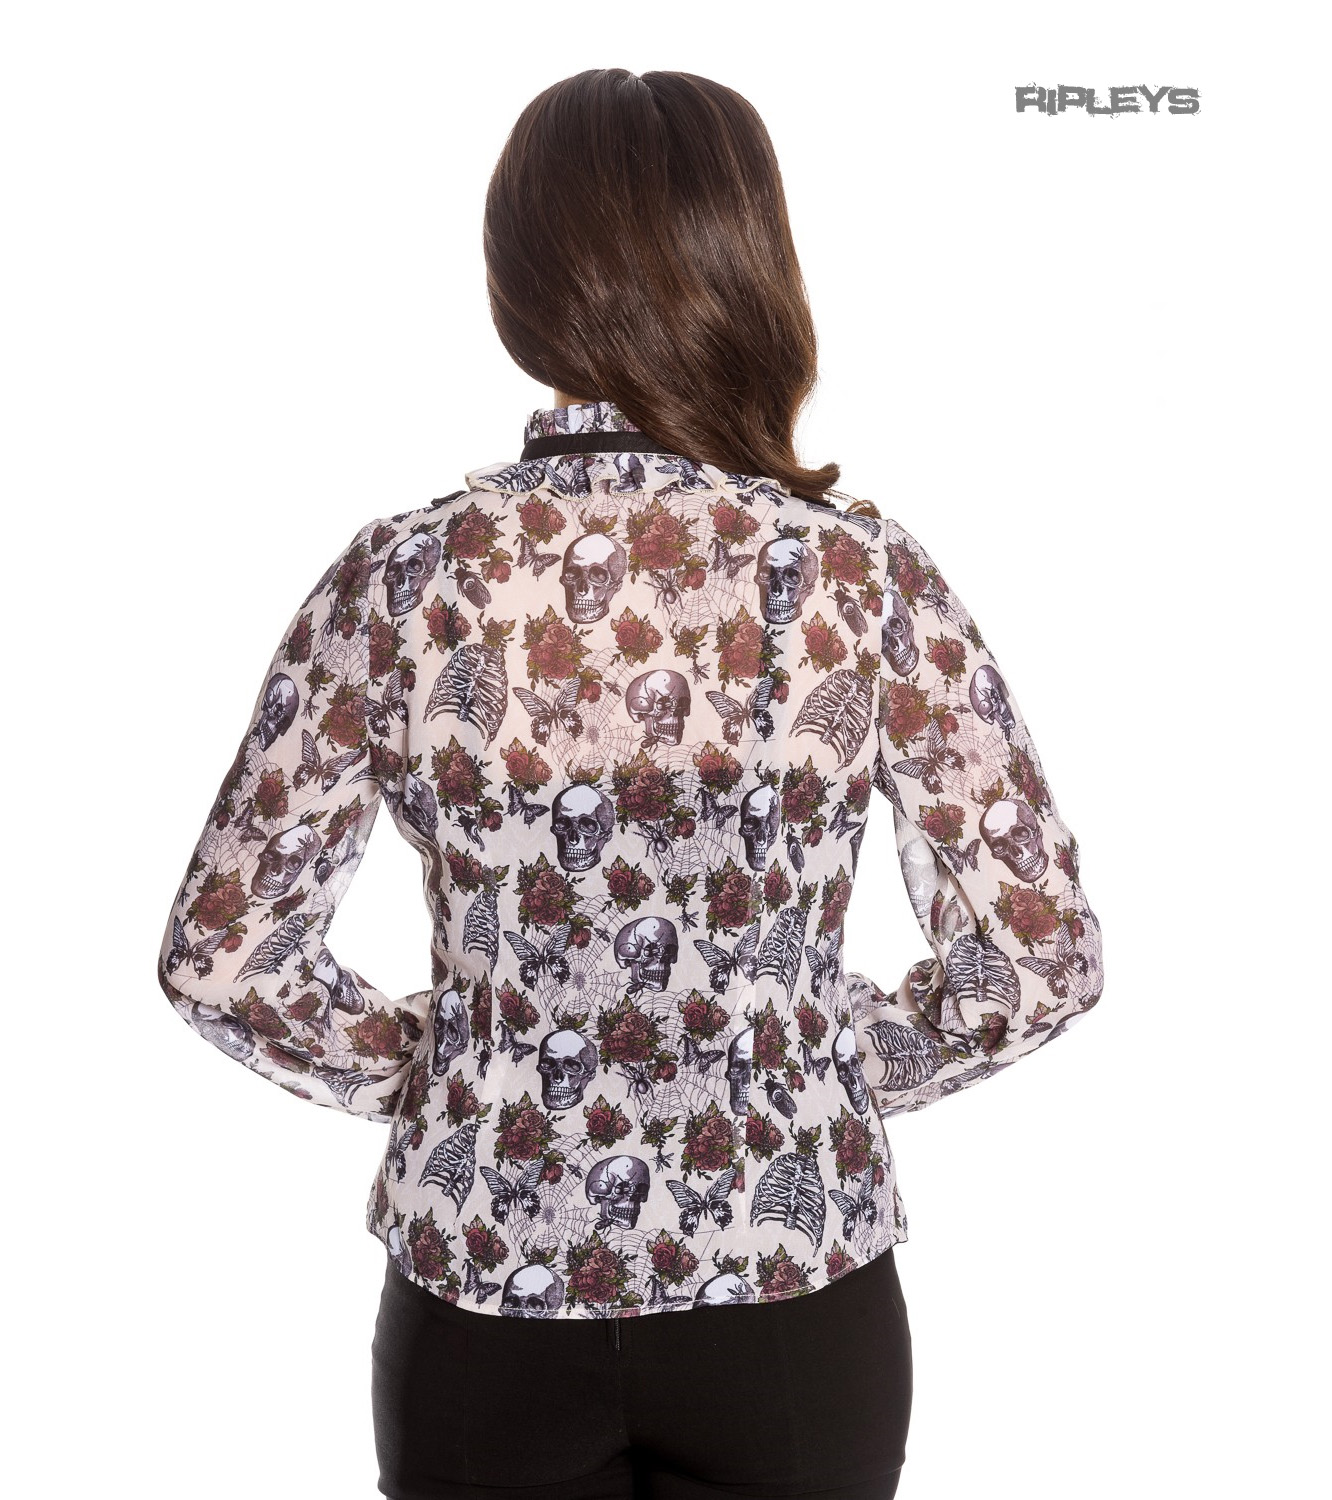 Hell-Bunny-Chiffon-Shirt-Top-Gothic-Skulls-Roses-GRISELDA-Blouse-Ivory-All-Sizes thumbnail 8